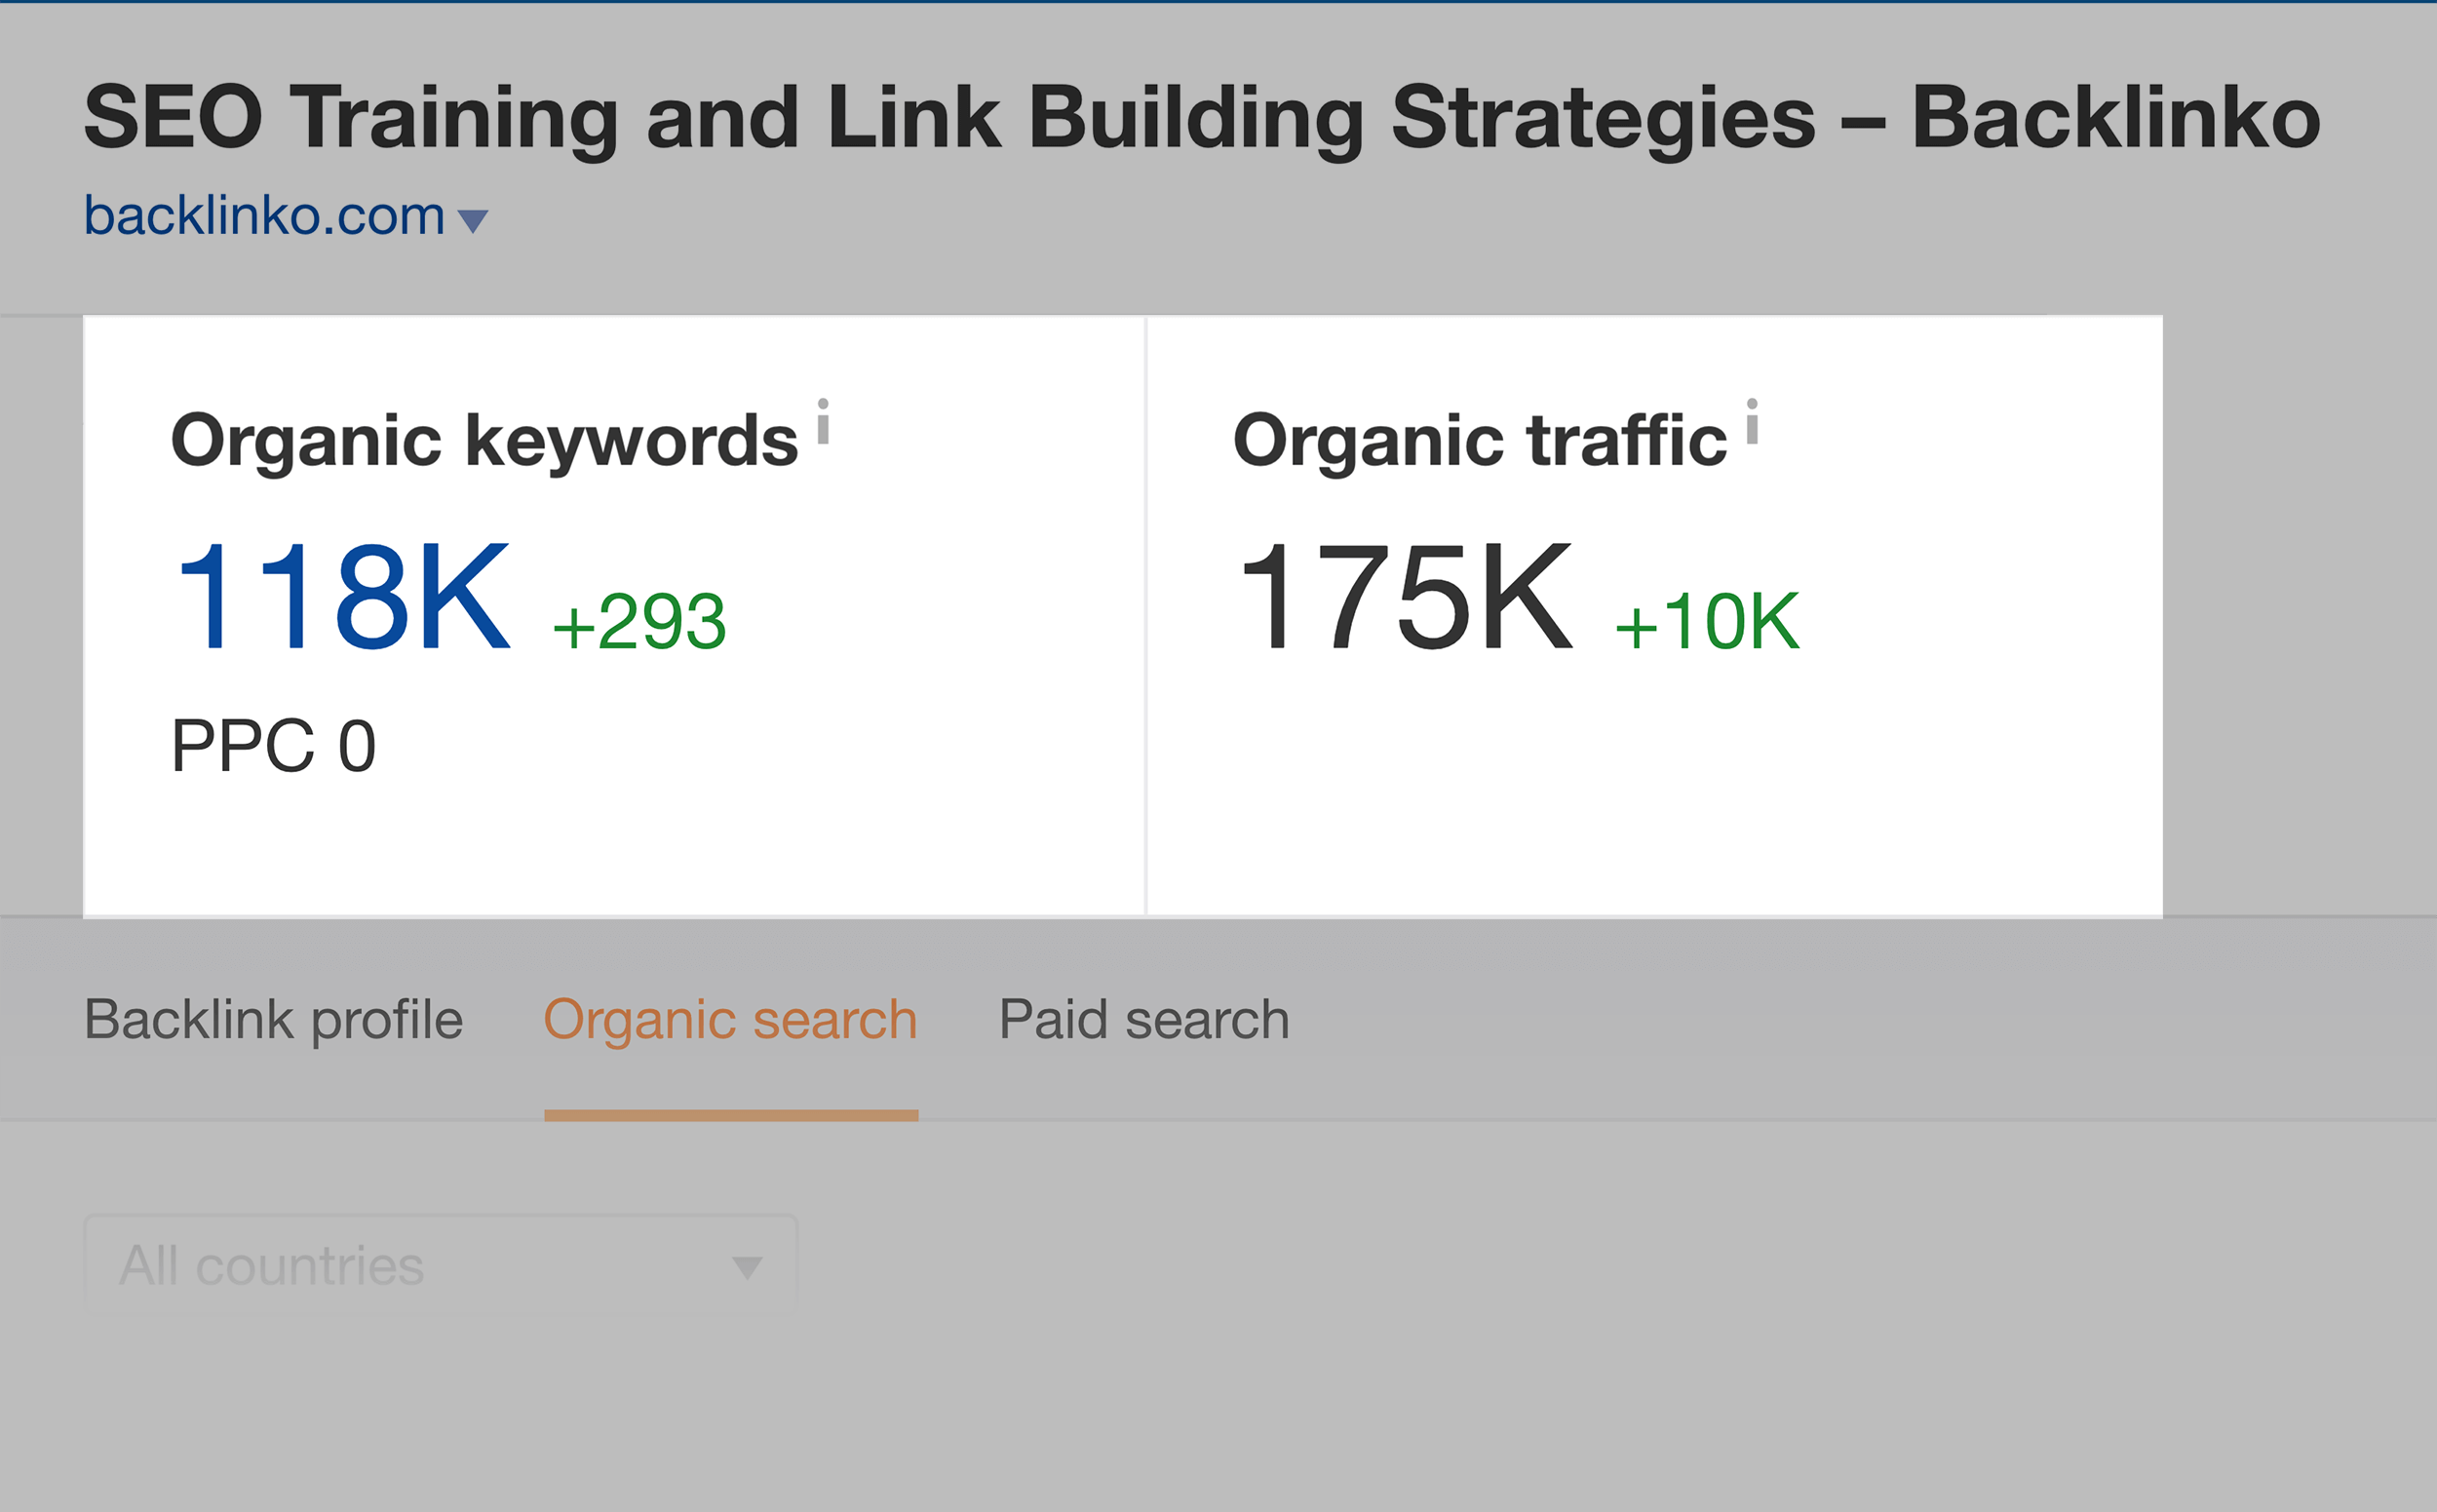 Ahrefs – Organic Keywords and Organic Traffic